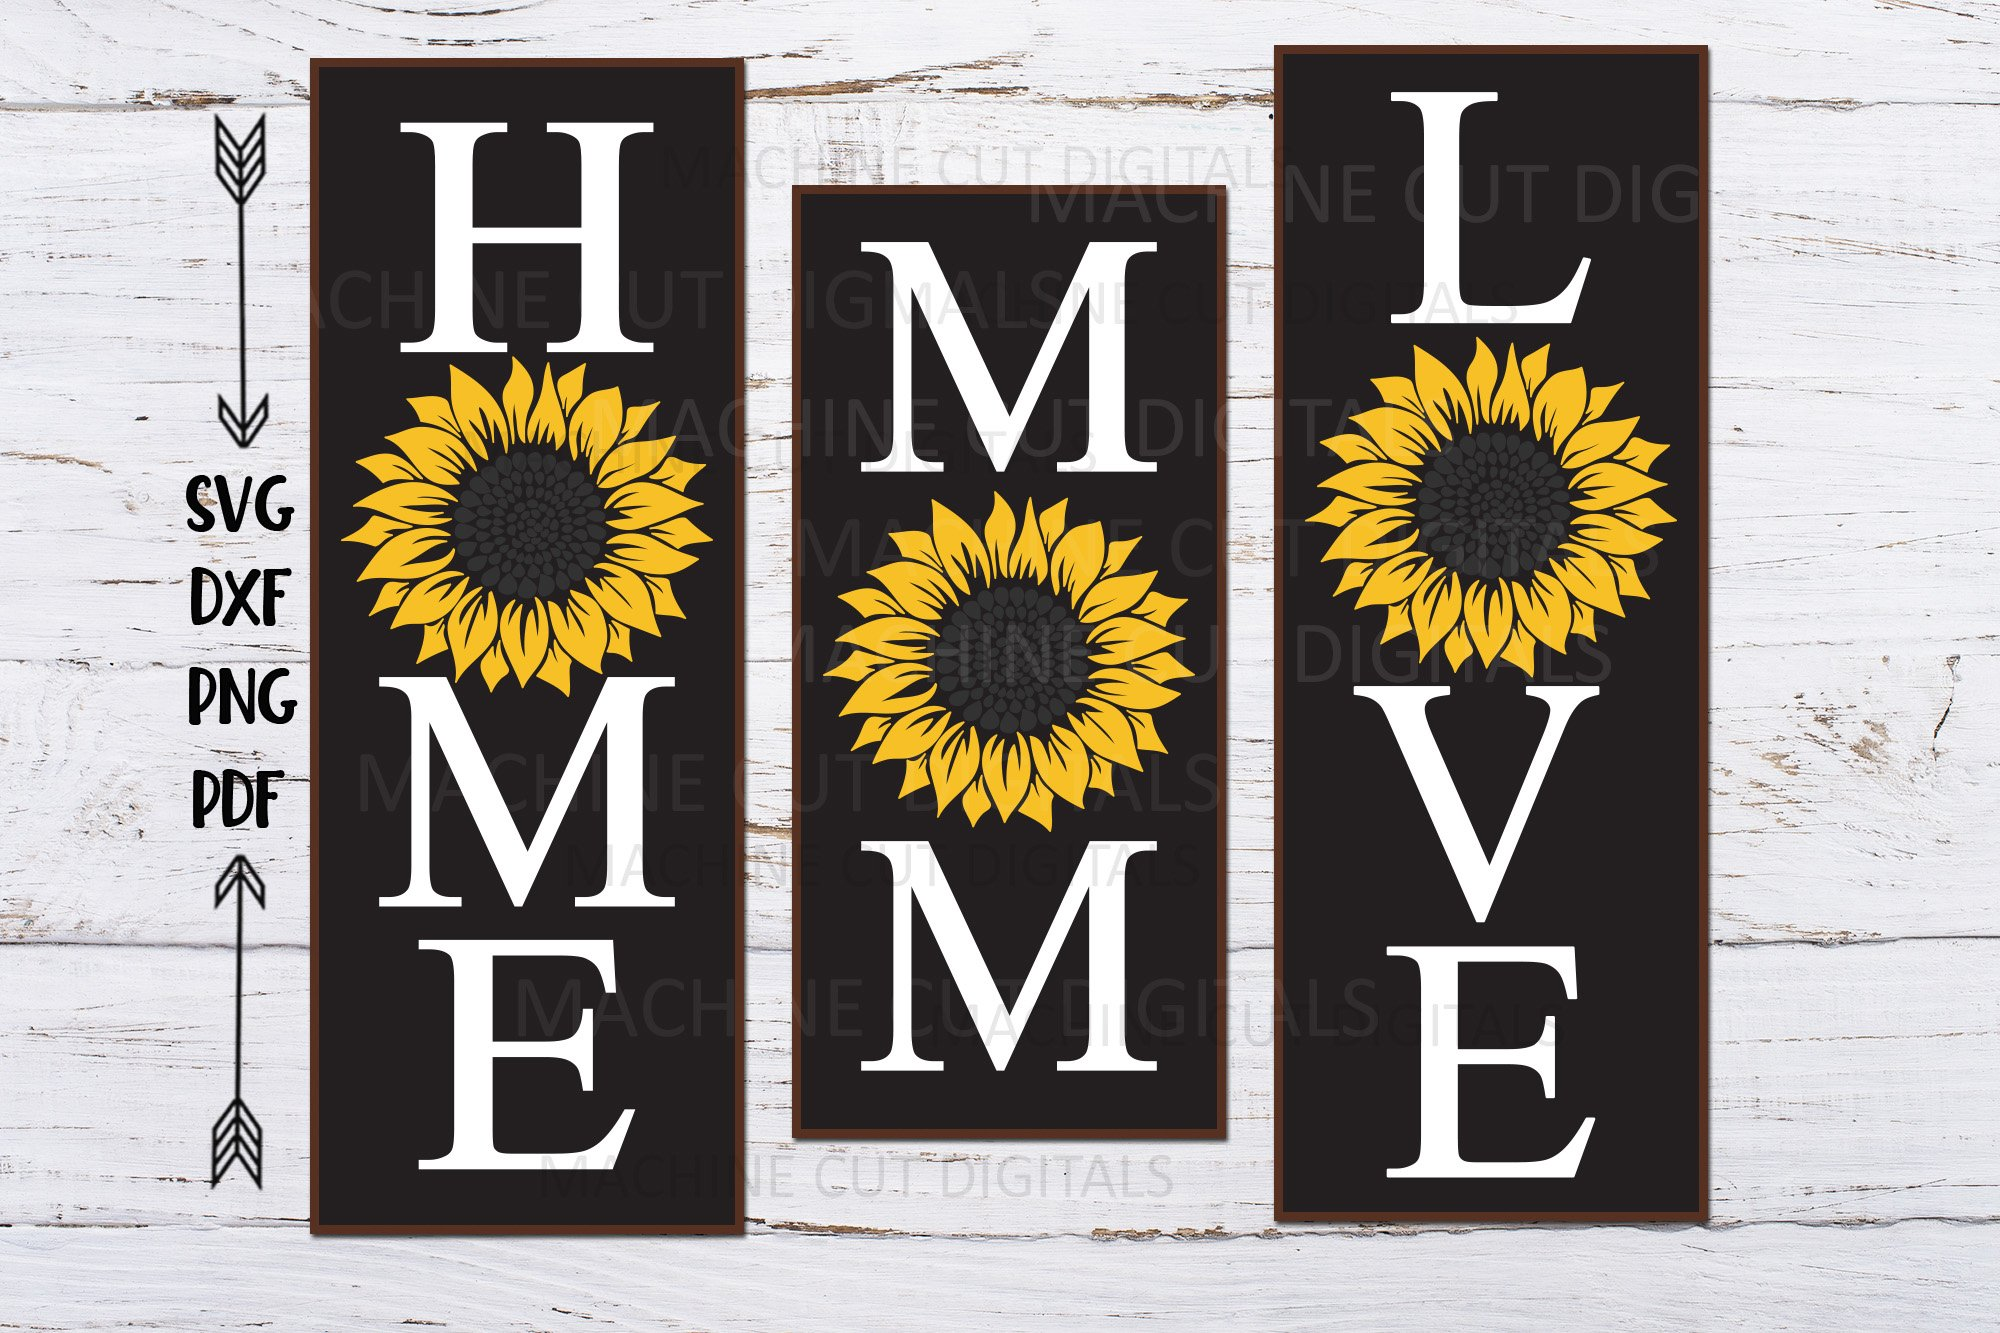 Free Check out our mothers day sign svg selection for the very best in unique or custom, handmade pieces from our shops. Mom Love Home Sunflower Mothers Day Signs Svg Cutting File 556470 Cut Files Design Bundles SVG, PNG, EPS, DXF File